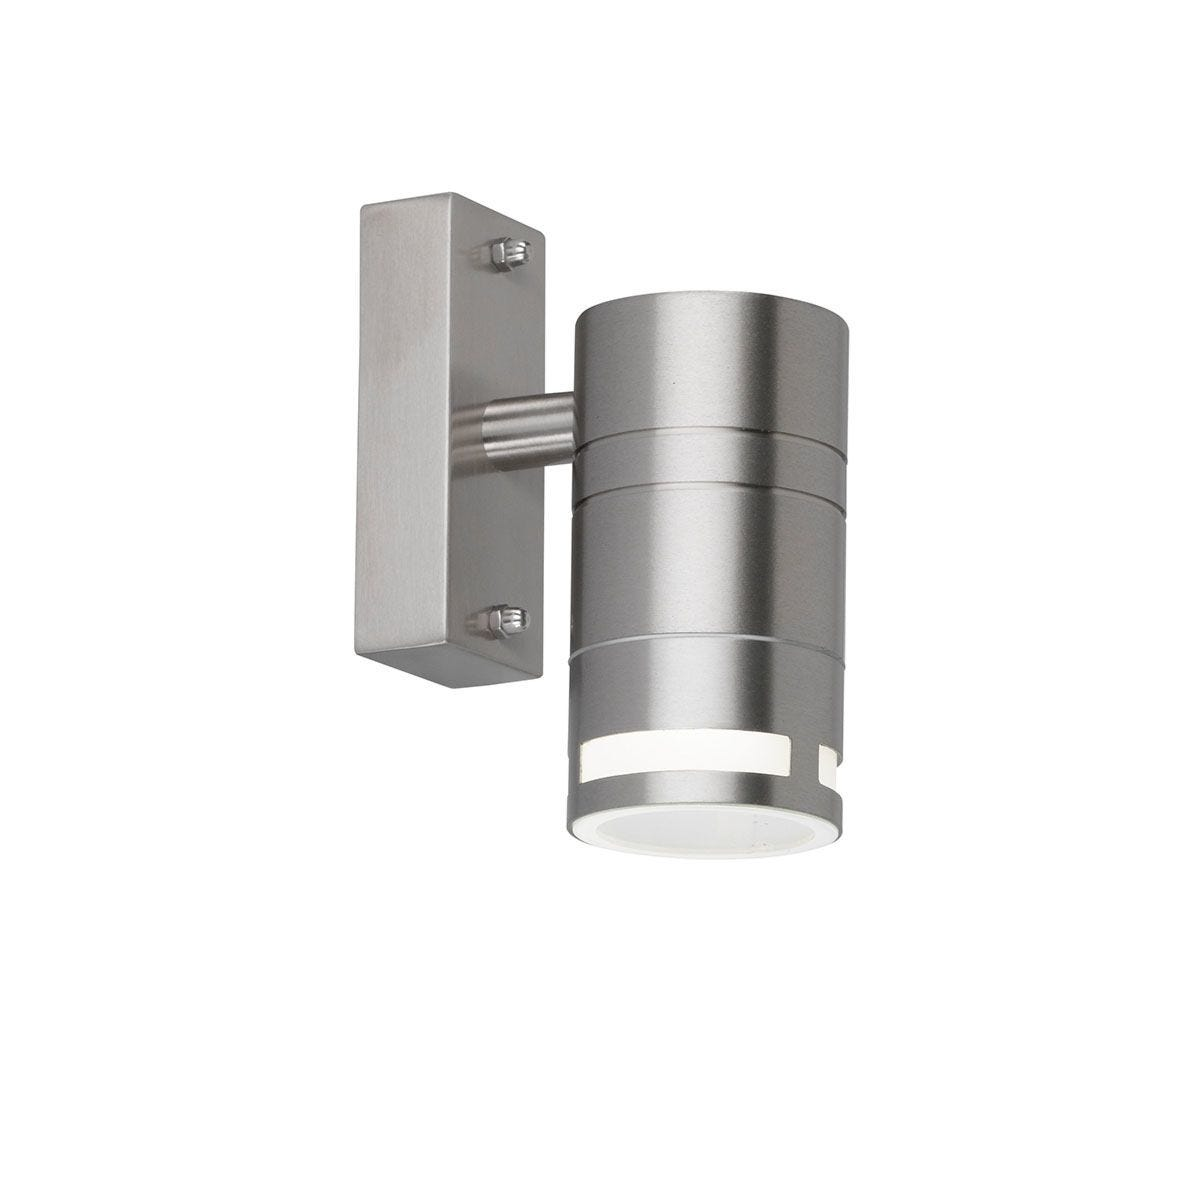 Wofi Vilano Wall Lamp - Brushed Stainless Steel